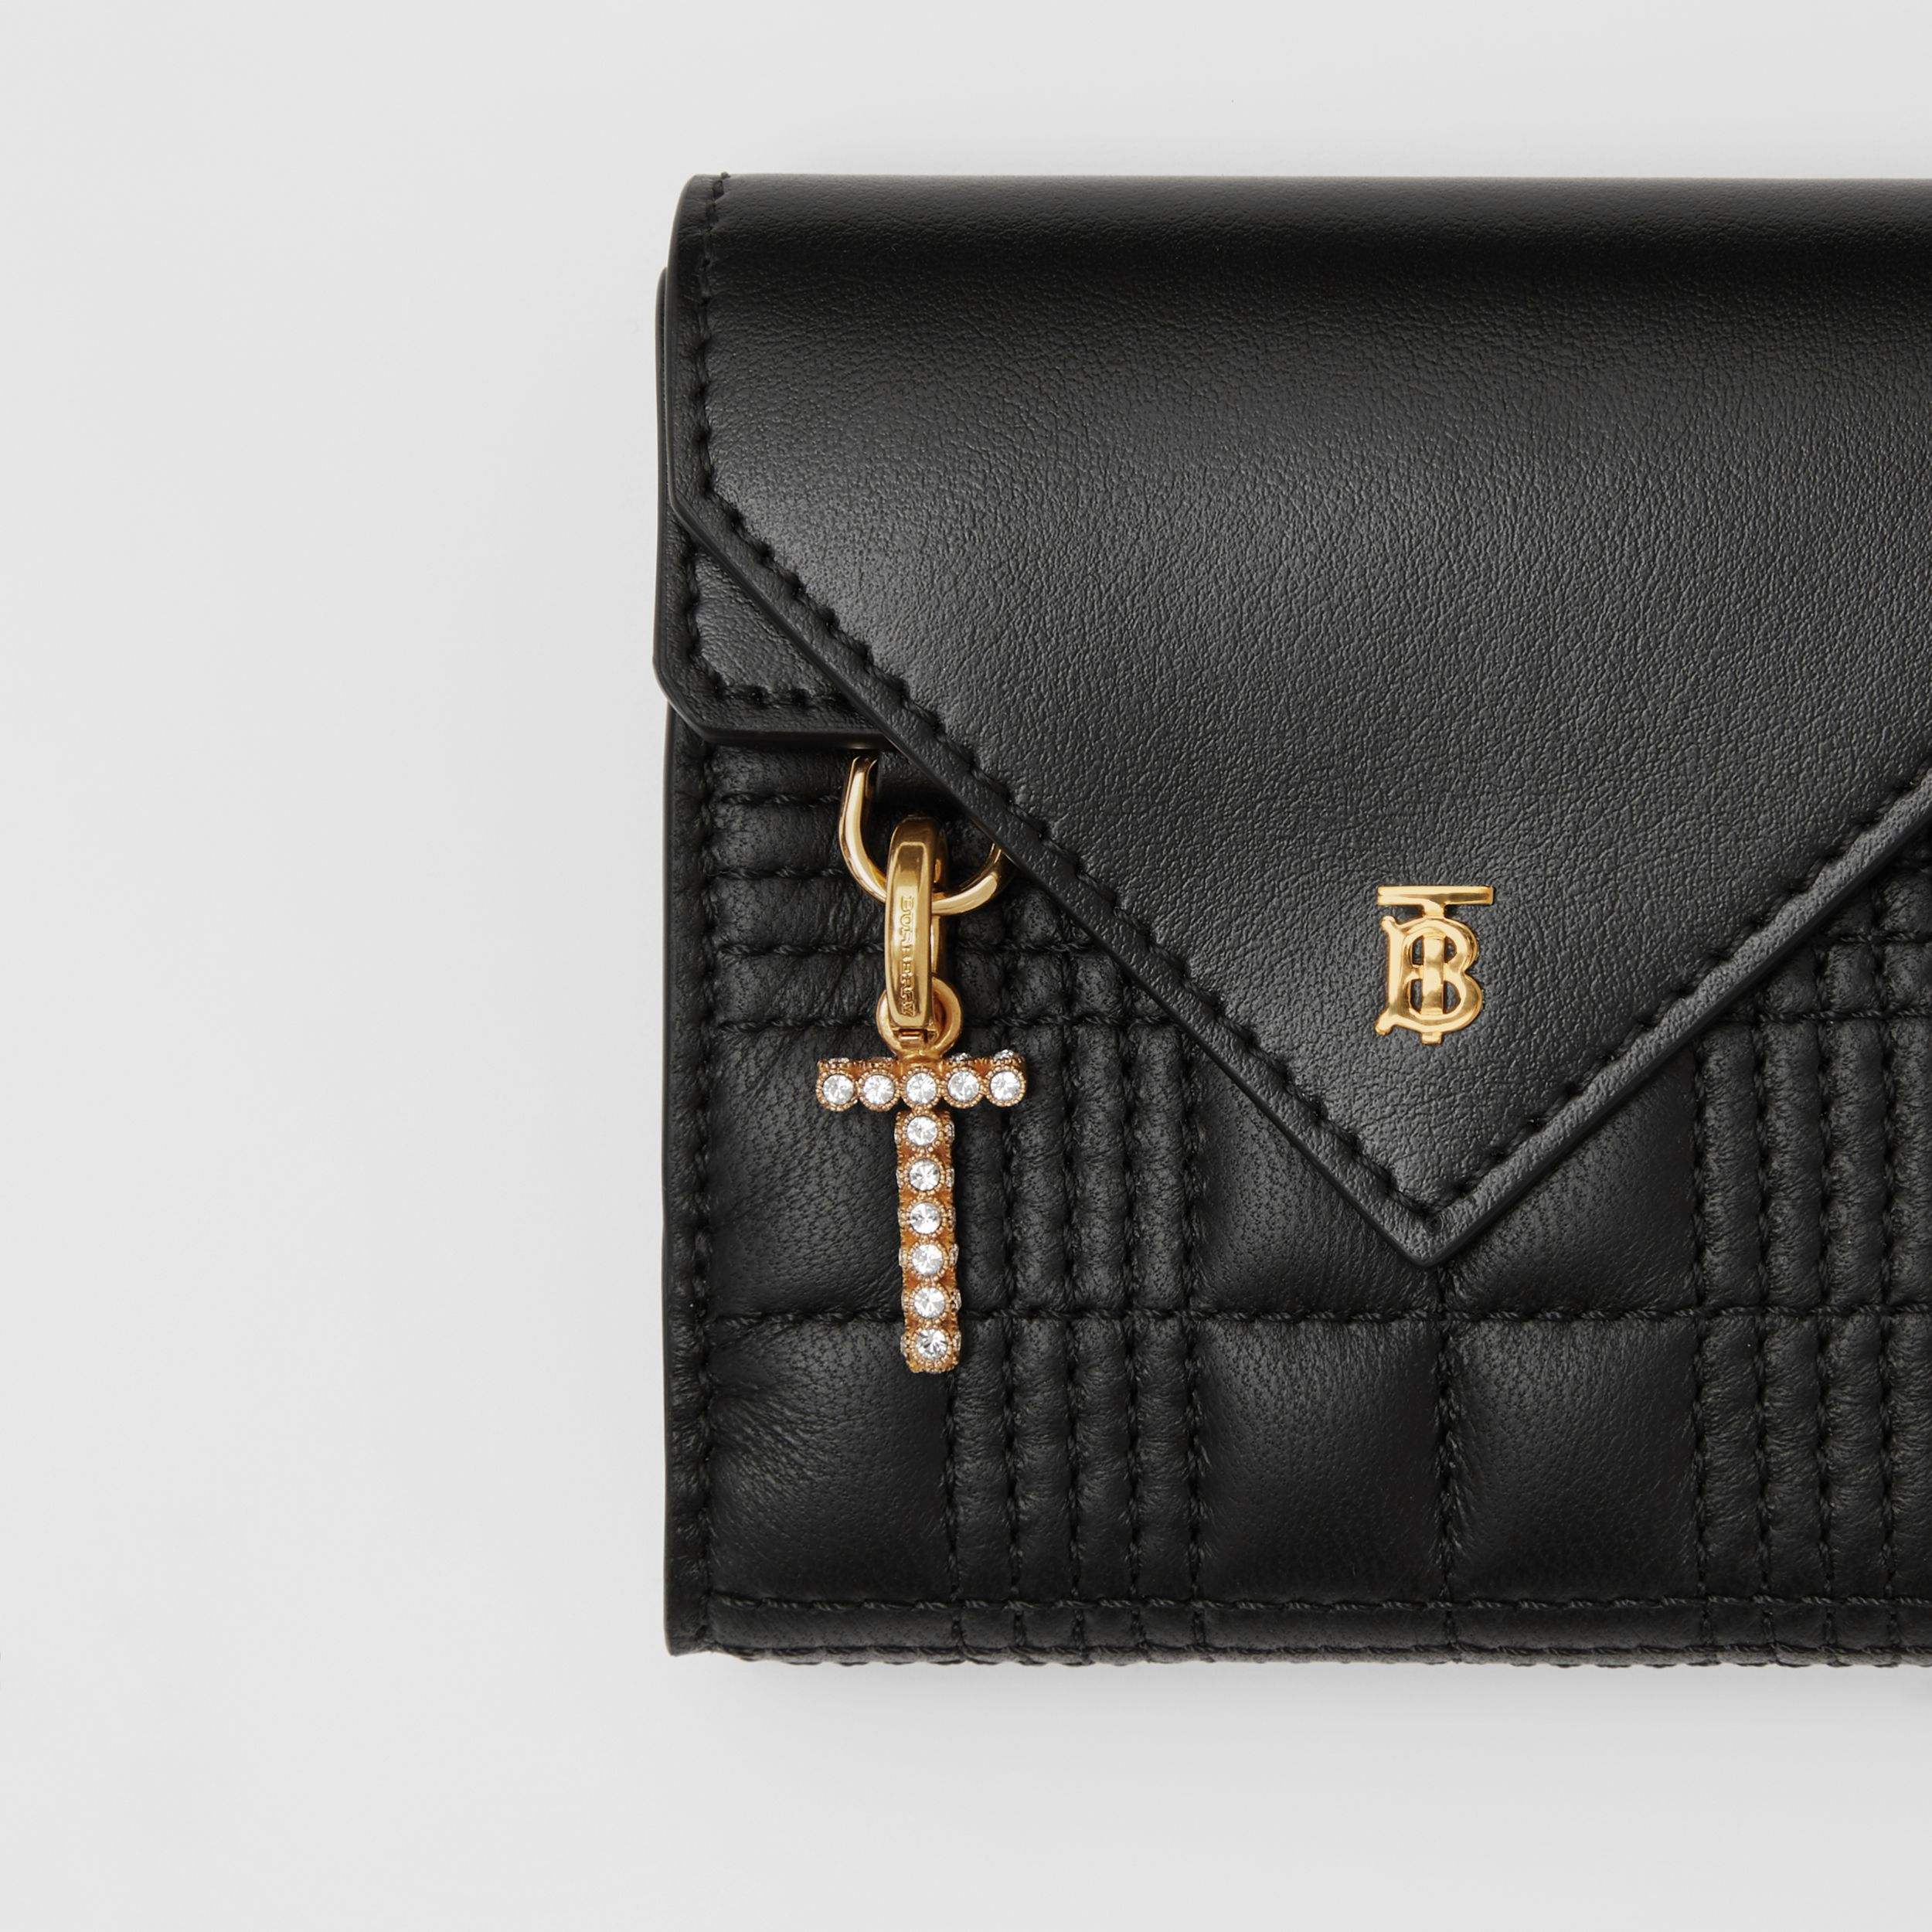 Quilted Lambskin Folding Wallet in Black - Women | Burberry - 2